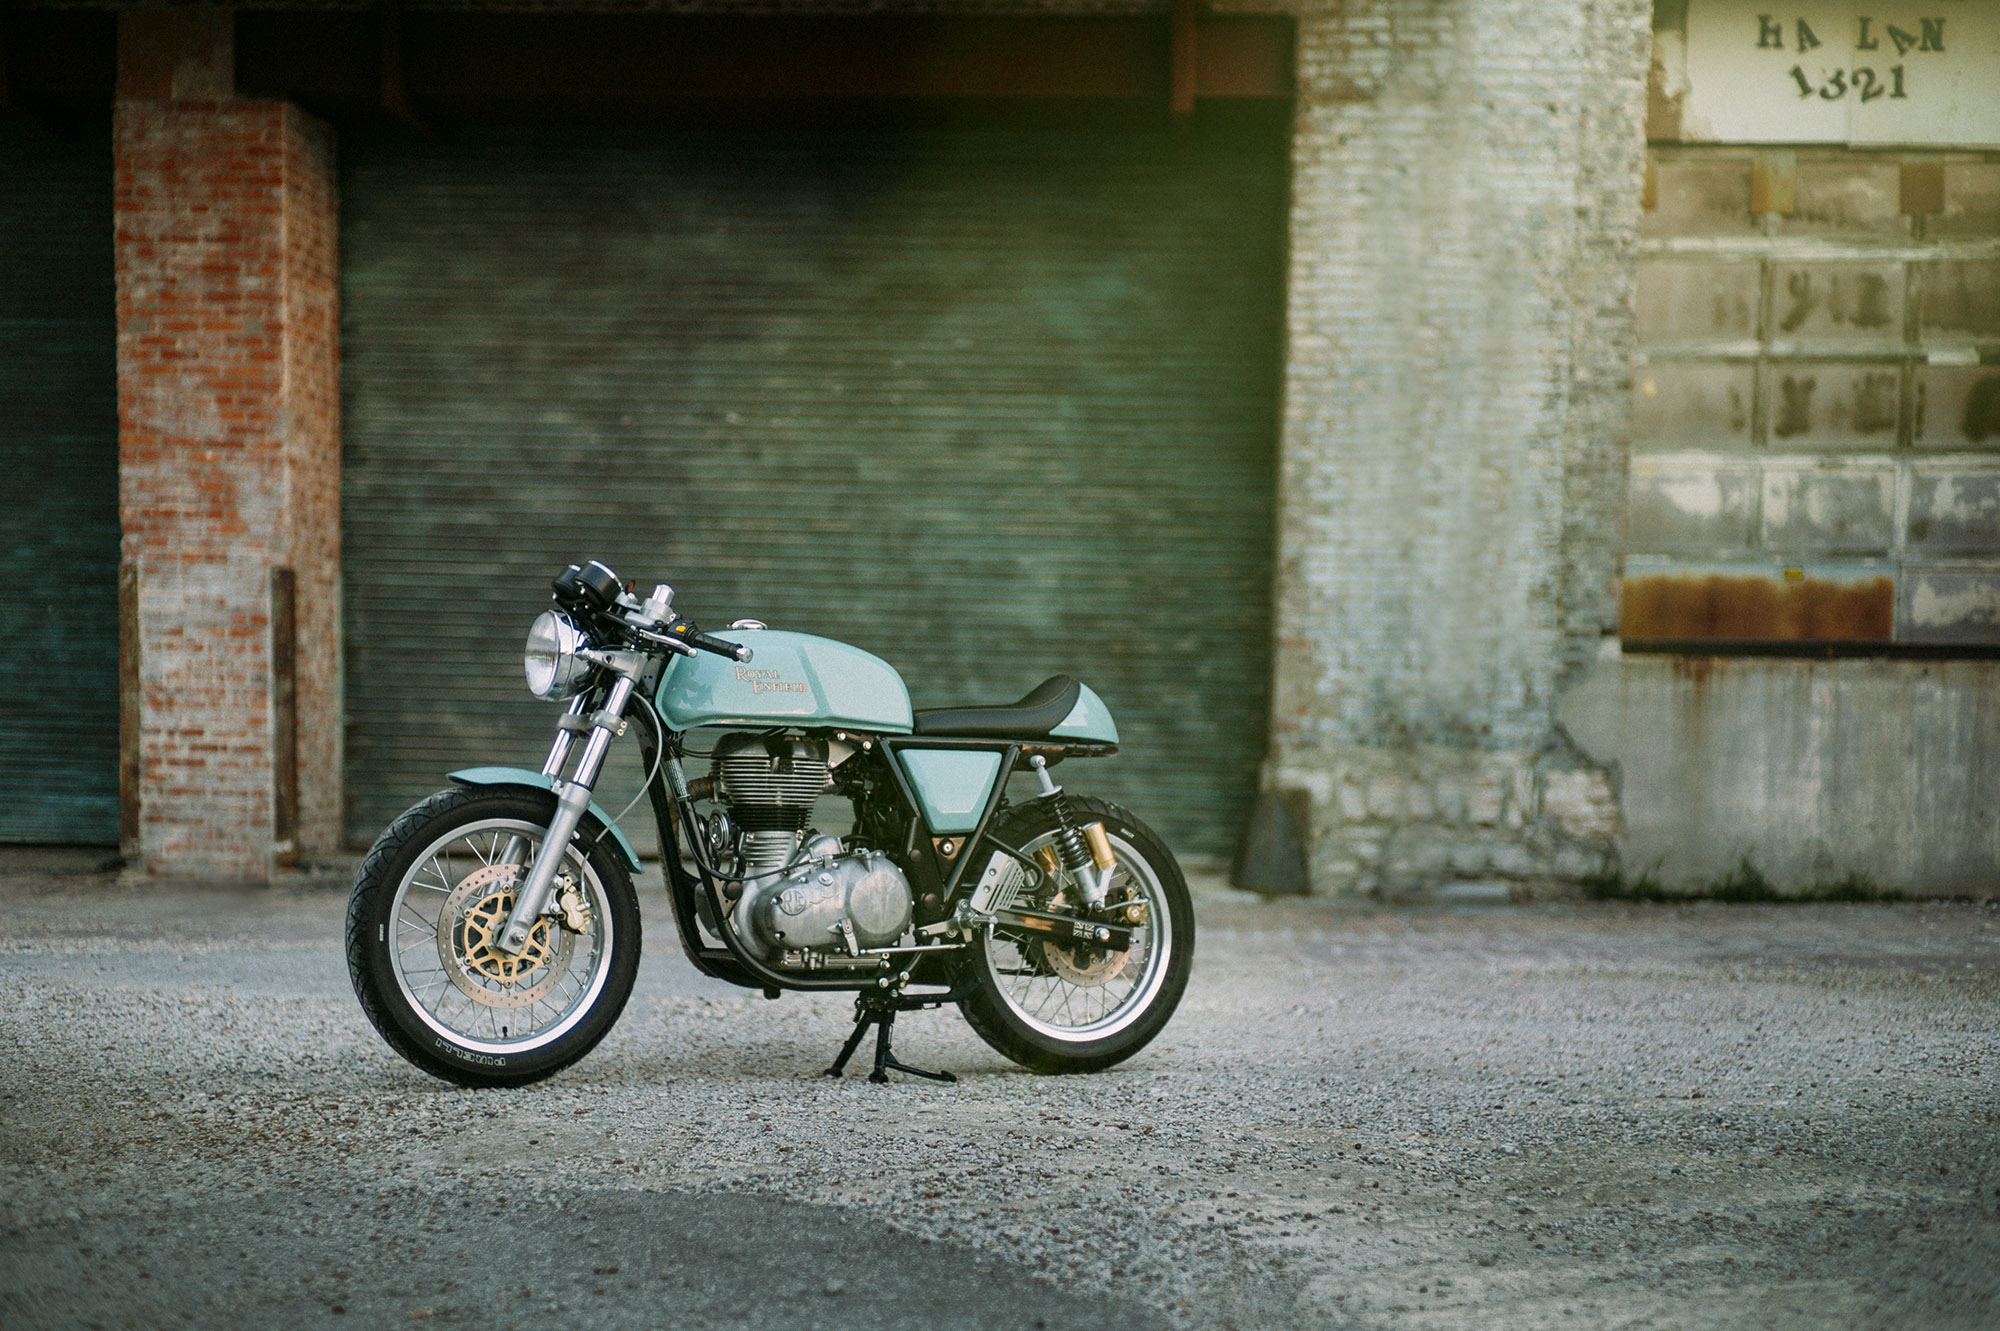 travis_young_royal_enfield_chip_03.JPG